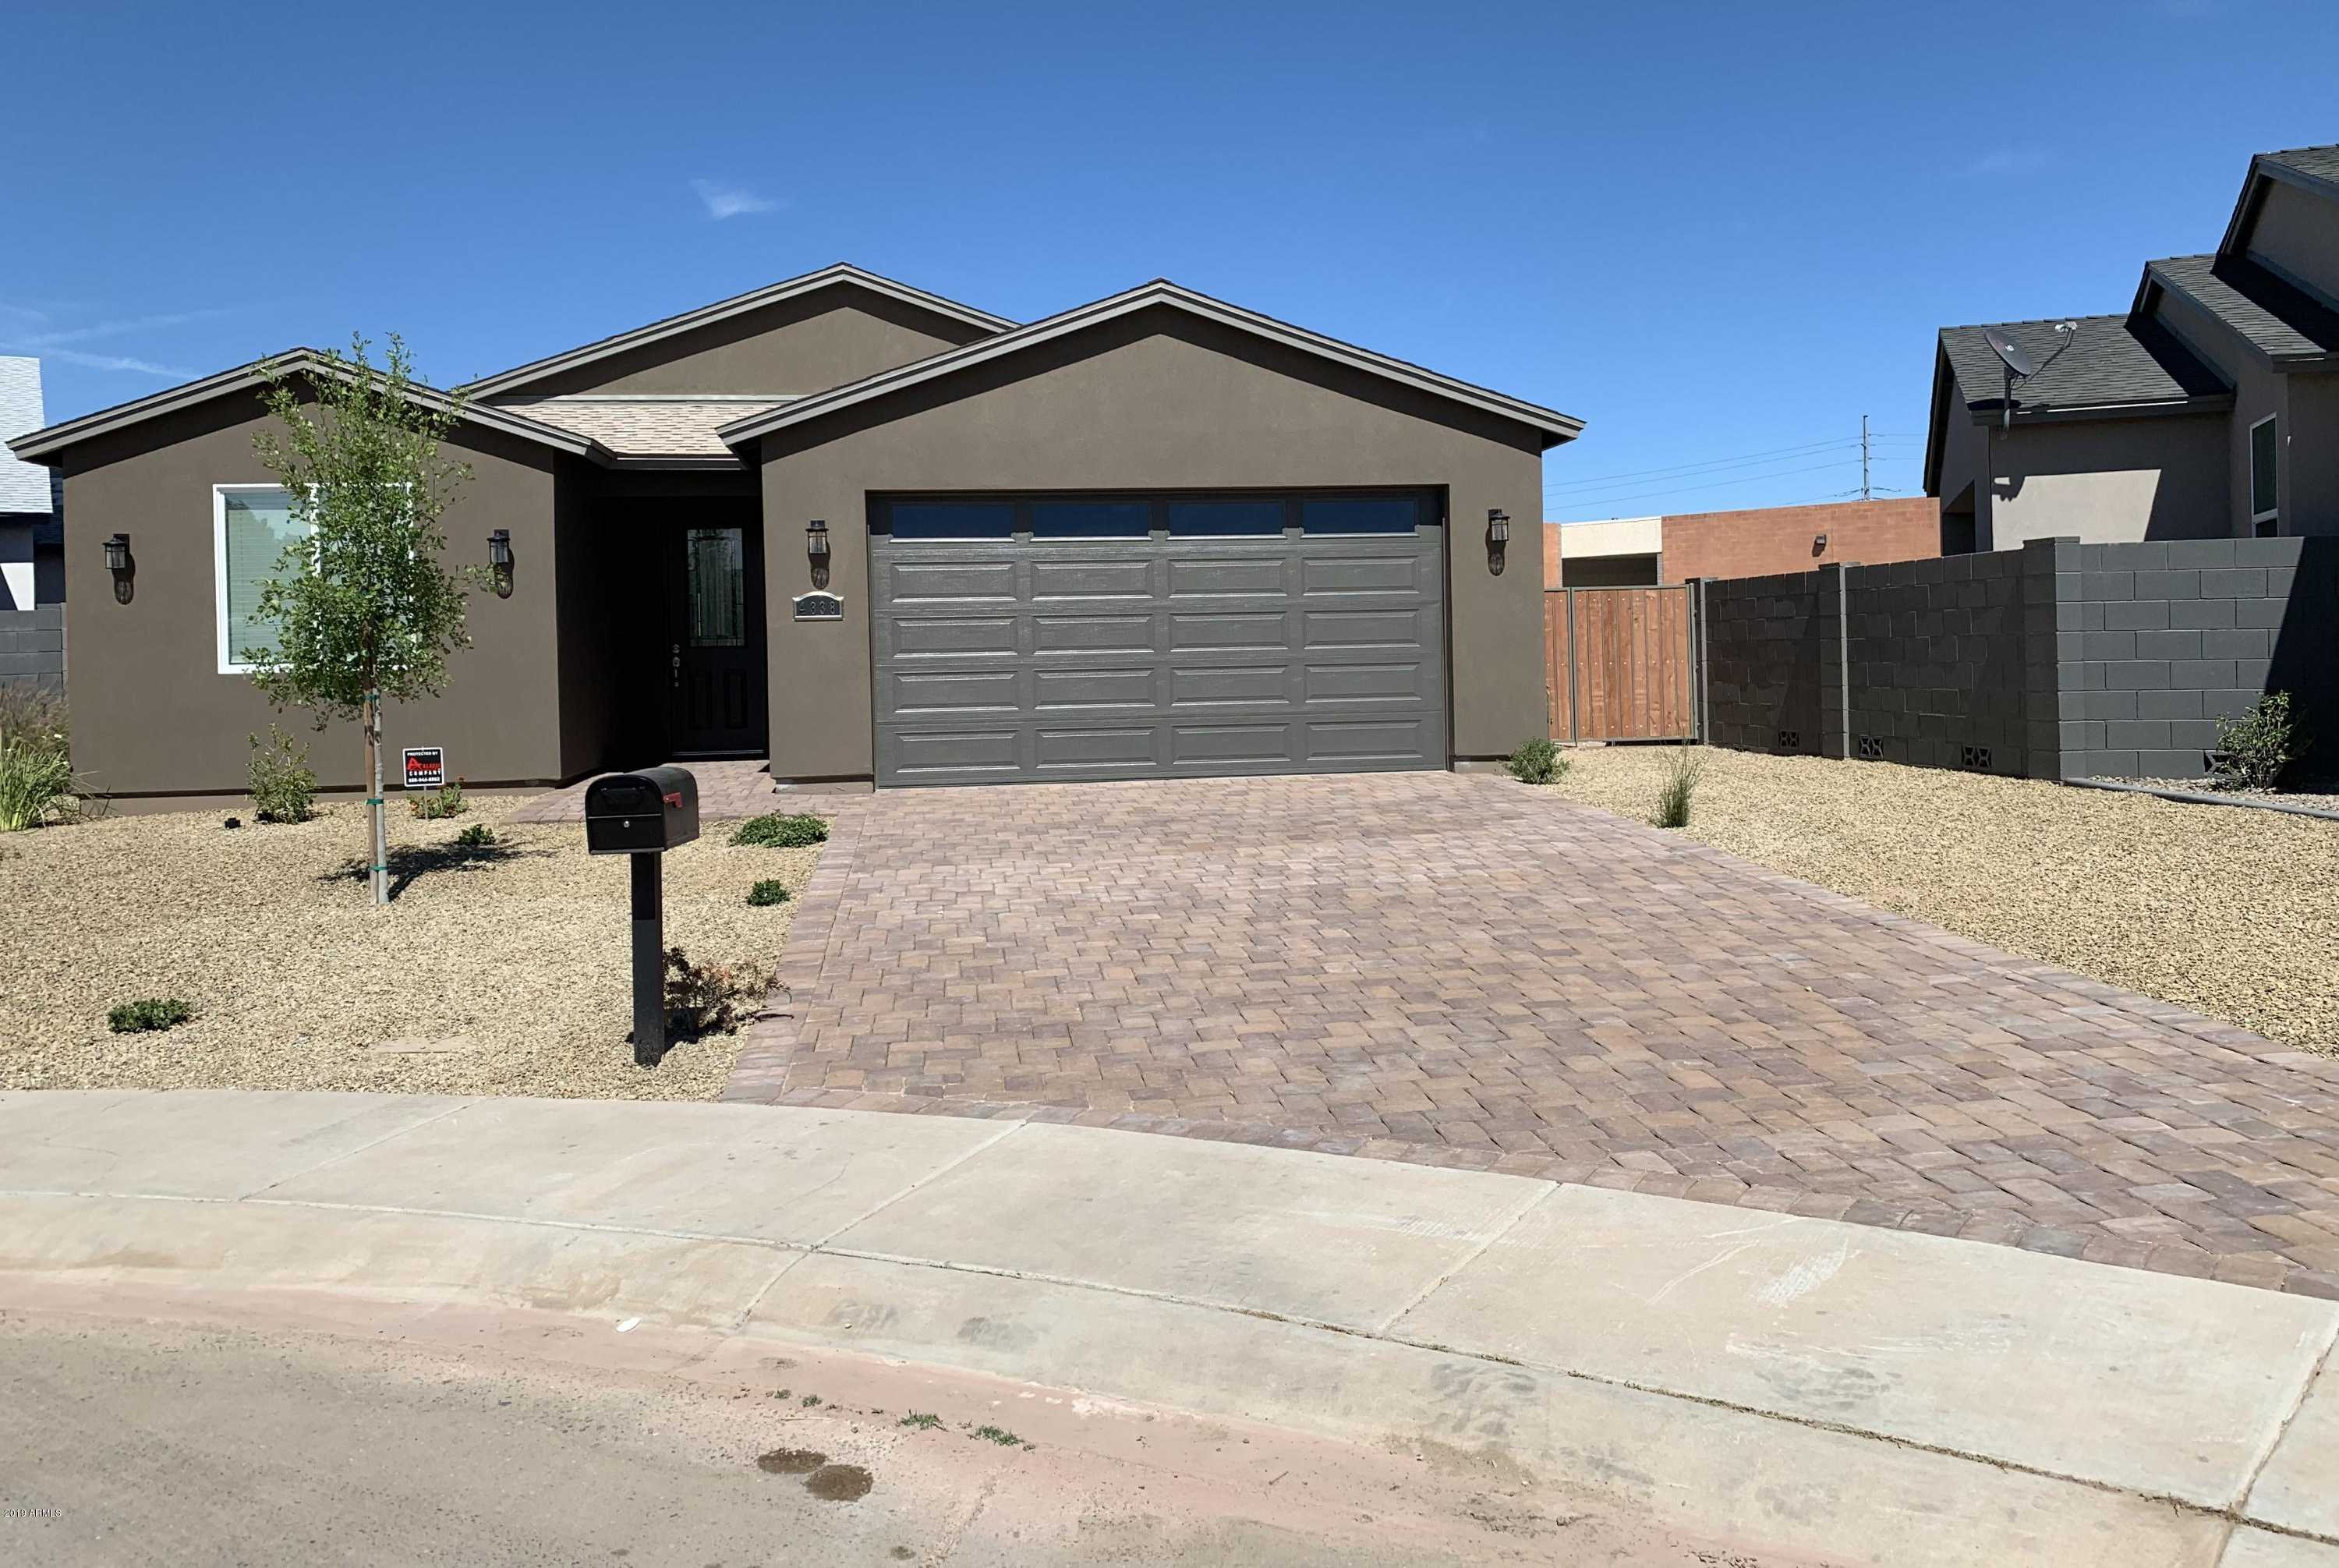 $375,800 - 4Br/3Ba - Home for Sale in Laurel Cove, Glendale